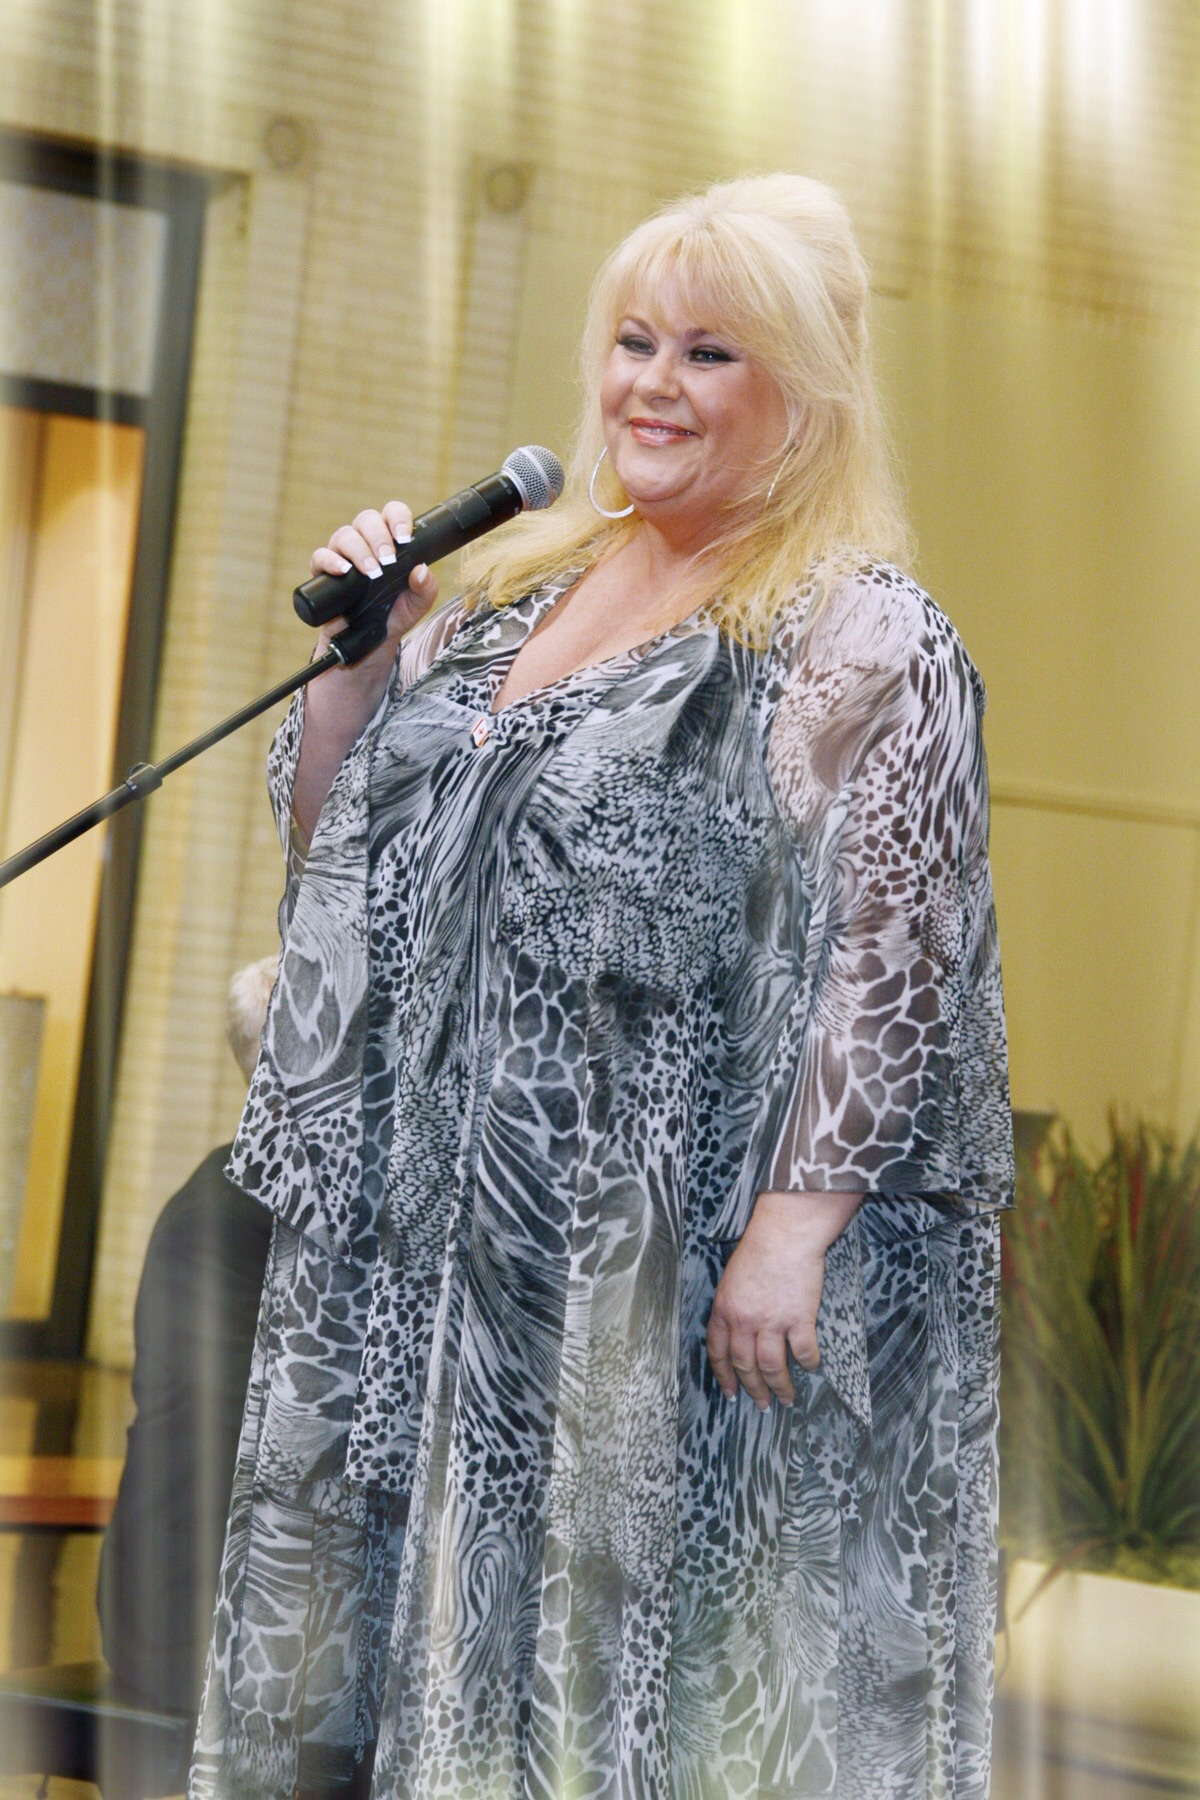 Throwback photo of France Joli for Canada Day at NorthPark Center